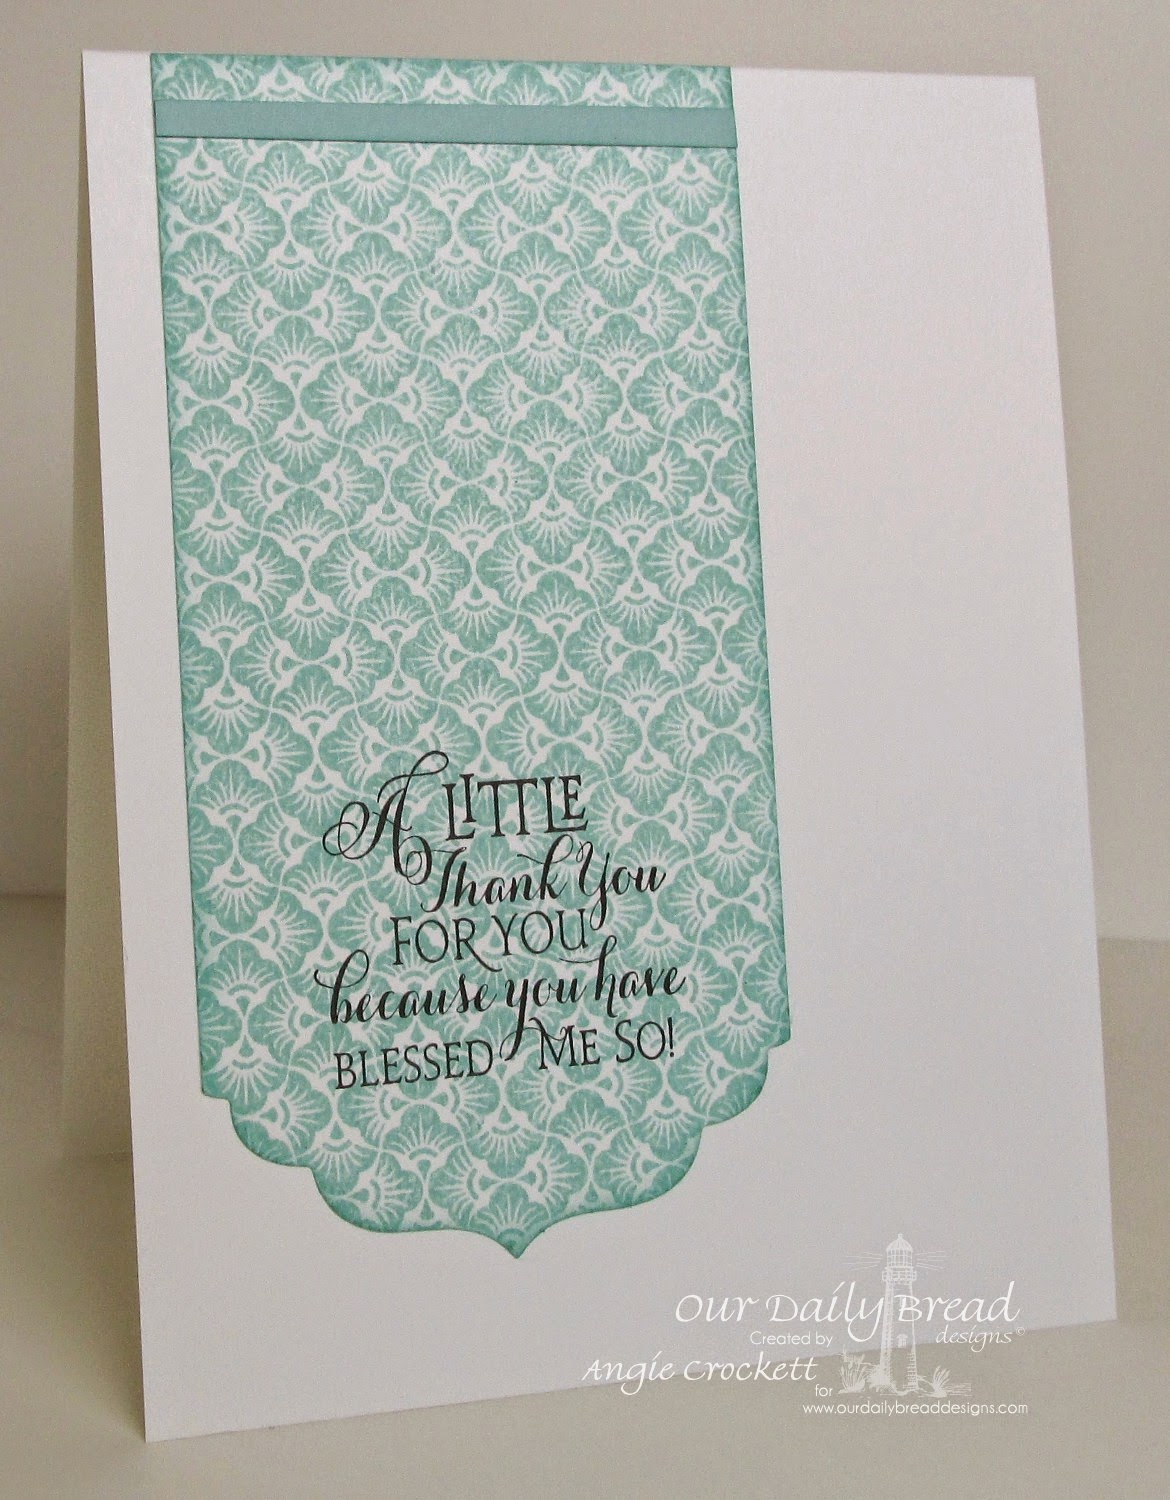 ODBD Chalkboard Fan Background, Sentiments Collection, Card Designer Angie Crockett